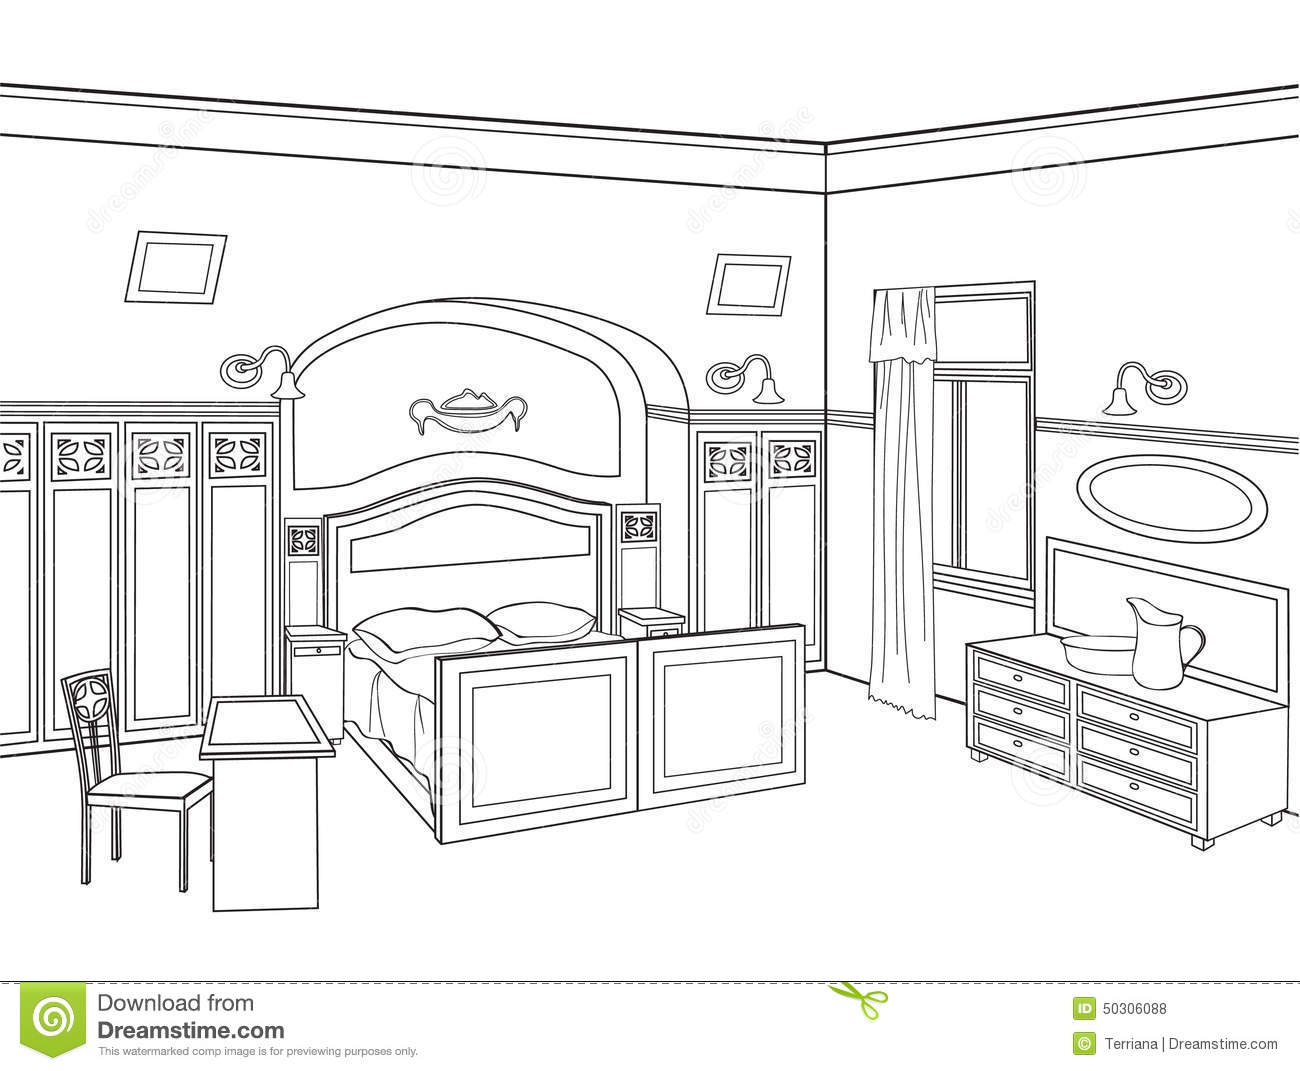 Bedroom Furniture Editable Illustration Of An Outline Sk